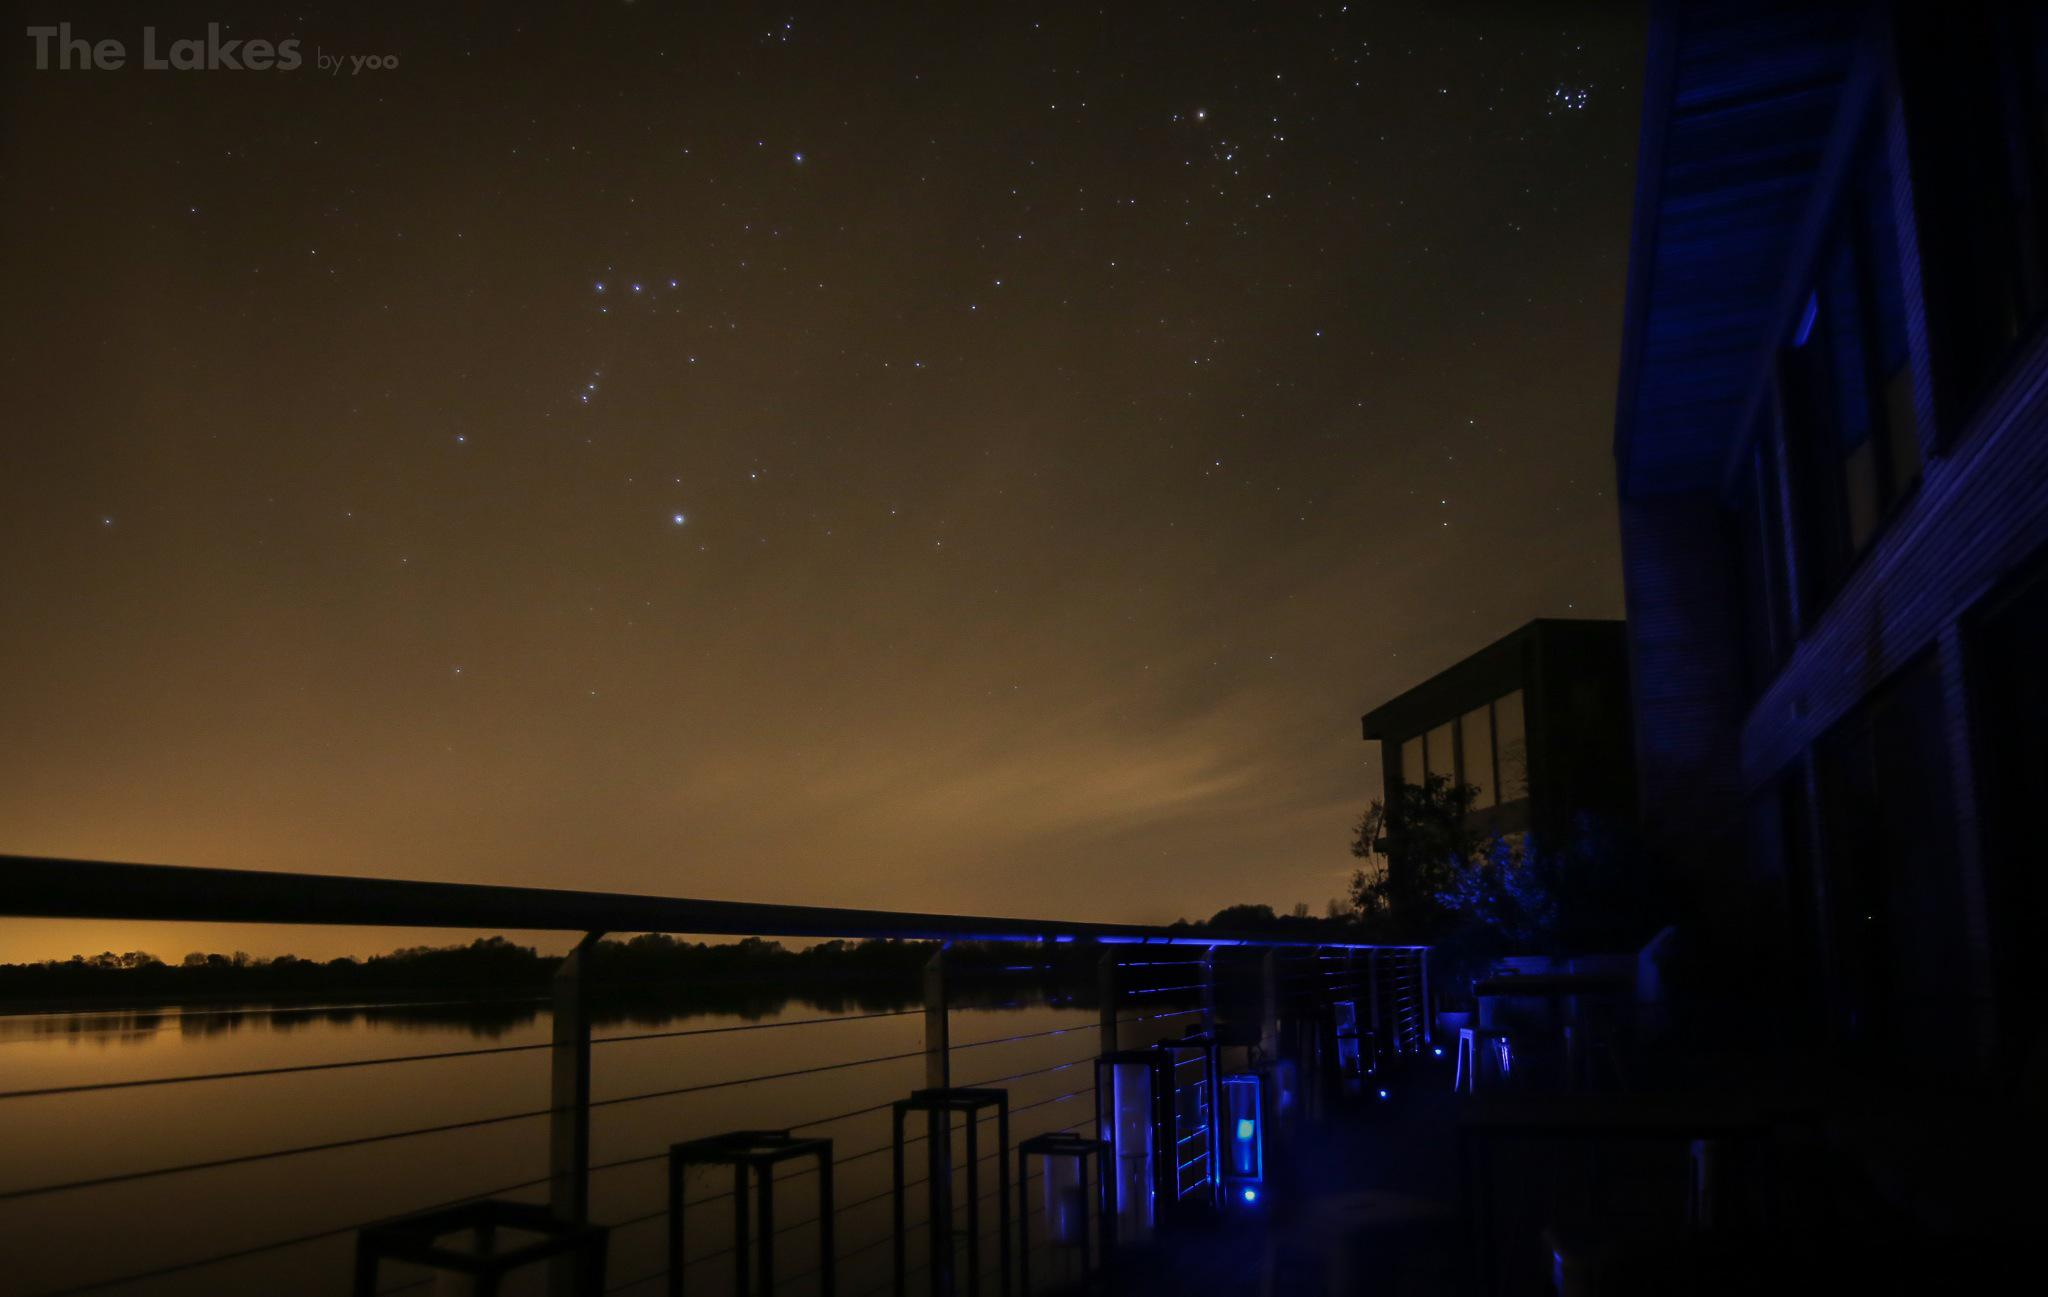 RT @TheLakesbyyoo: Star gazing at the Lakes…what an amazing experience.  http://t.co/oIhownJx4w http://t.co/QOAOa7Lj06